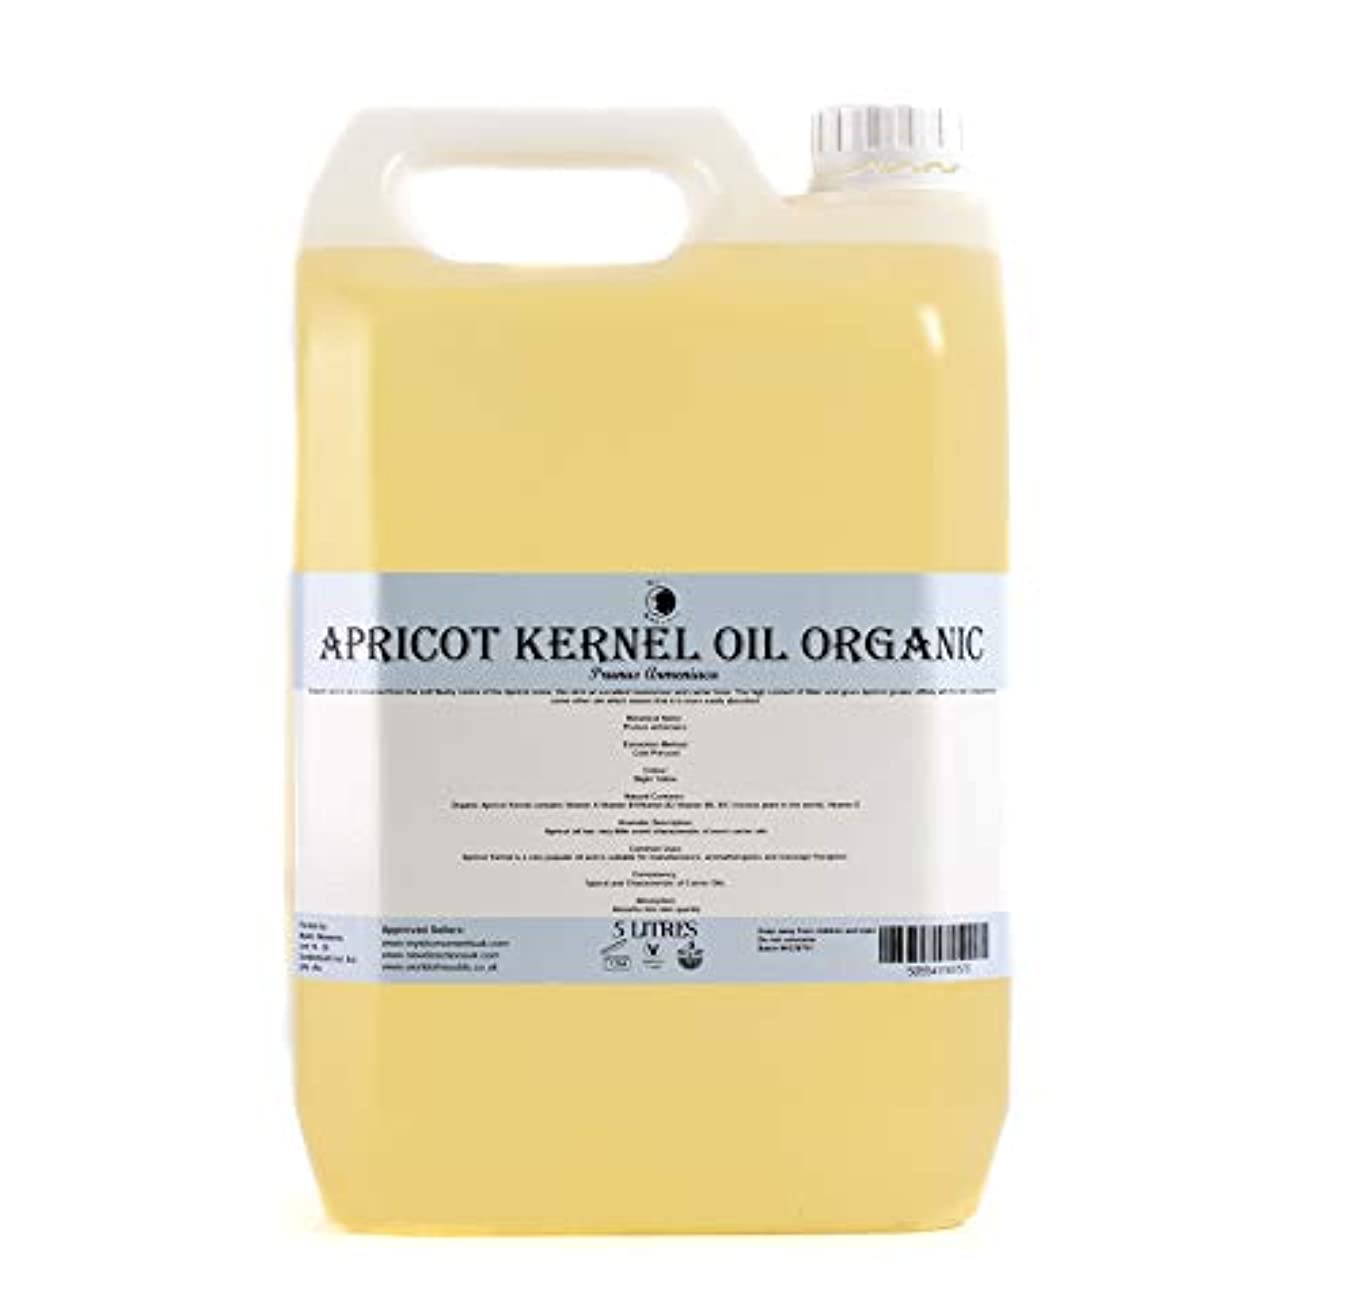 歩行者然とした付属品Mystic Moments | Apricot Kernel Organic Carrier Oil - 5 Litres - 100% Pure